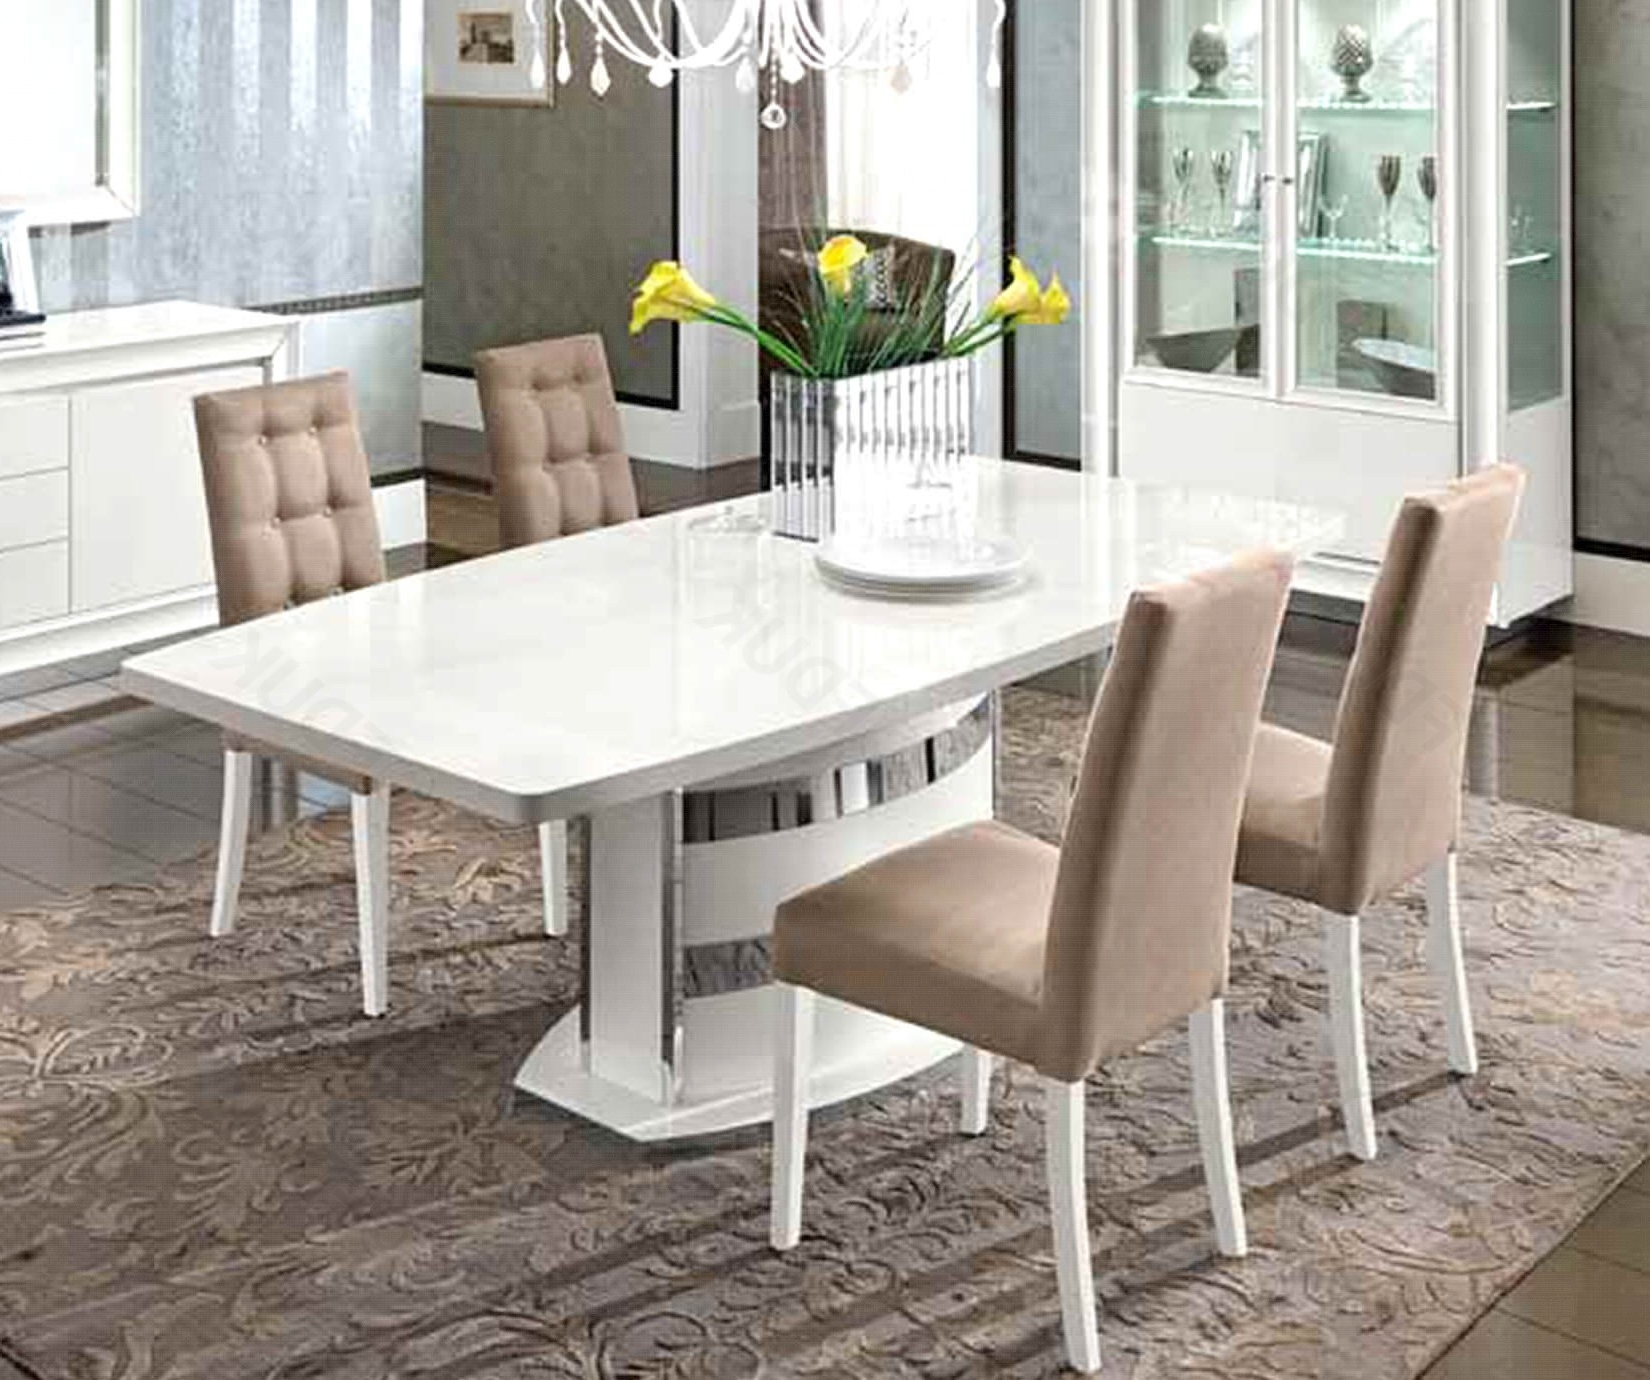 Most Recent White Gloss Extendable Dining Tables Throughout The 26 New White High Gloss Extending Dining Table – Welovedandelion (View 10 of 25)